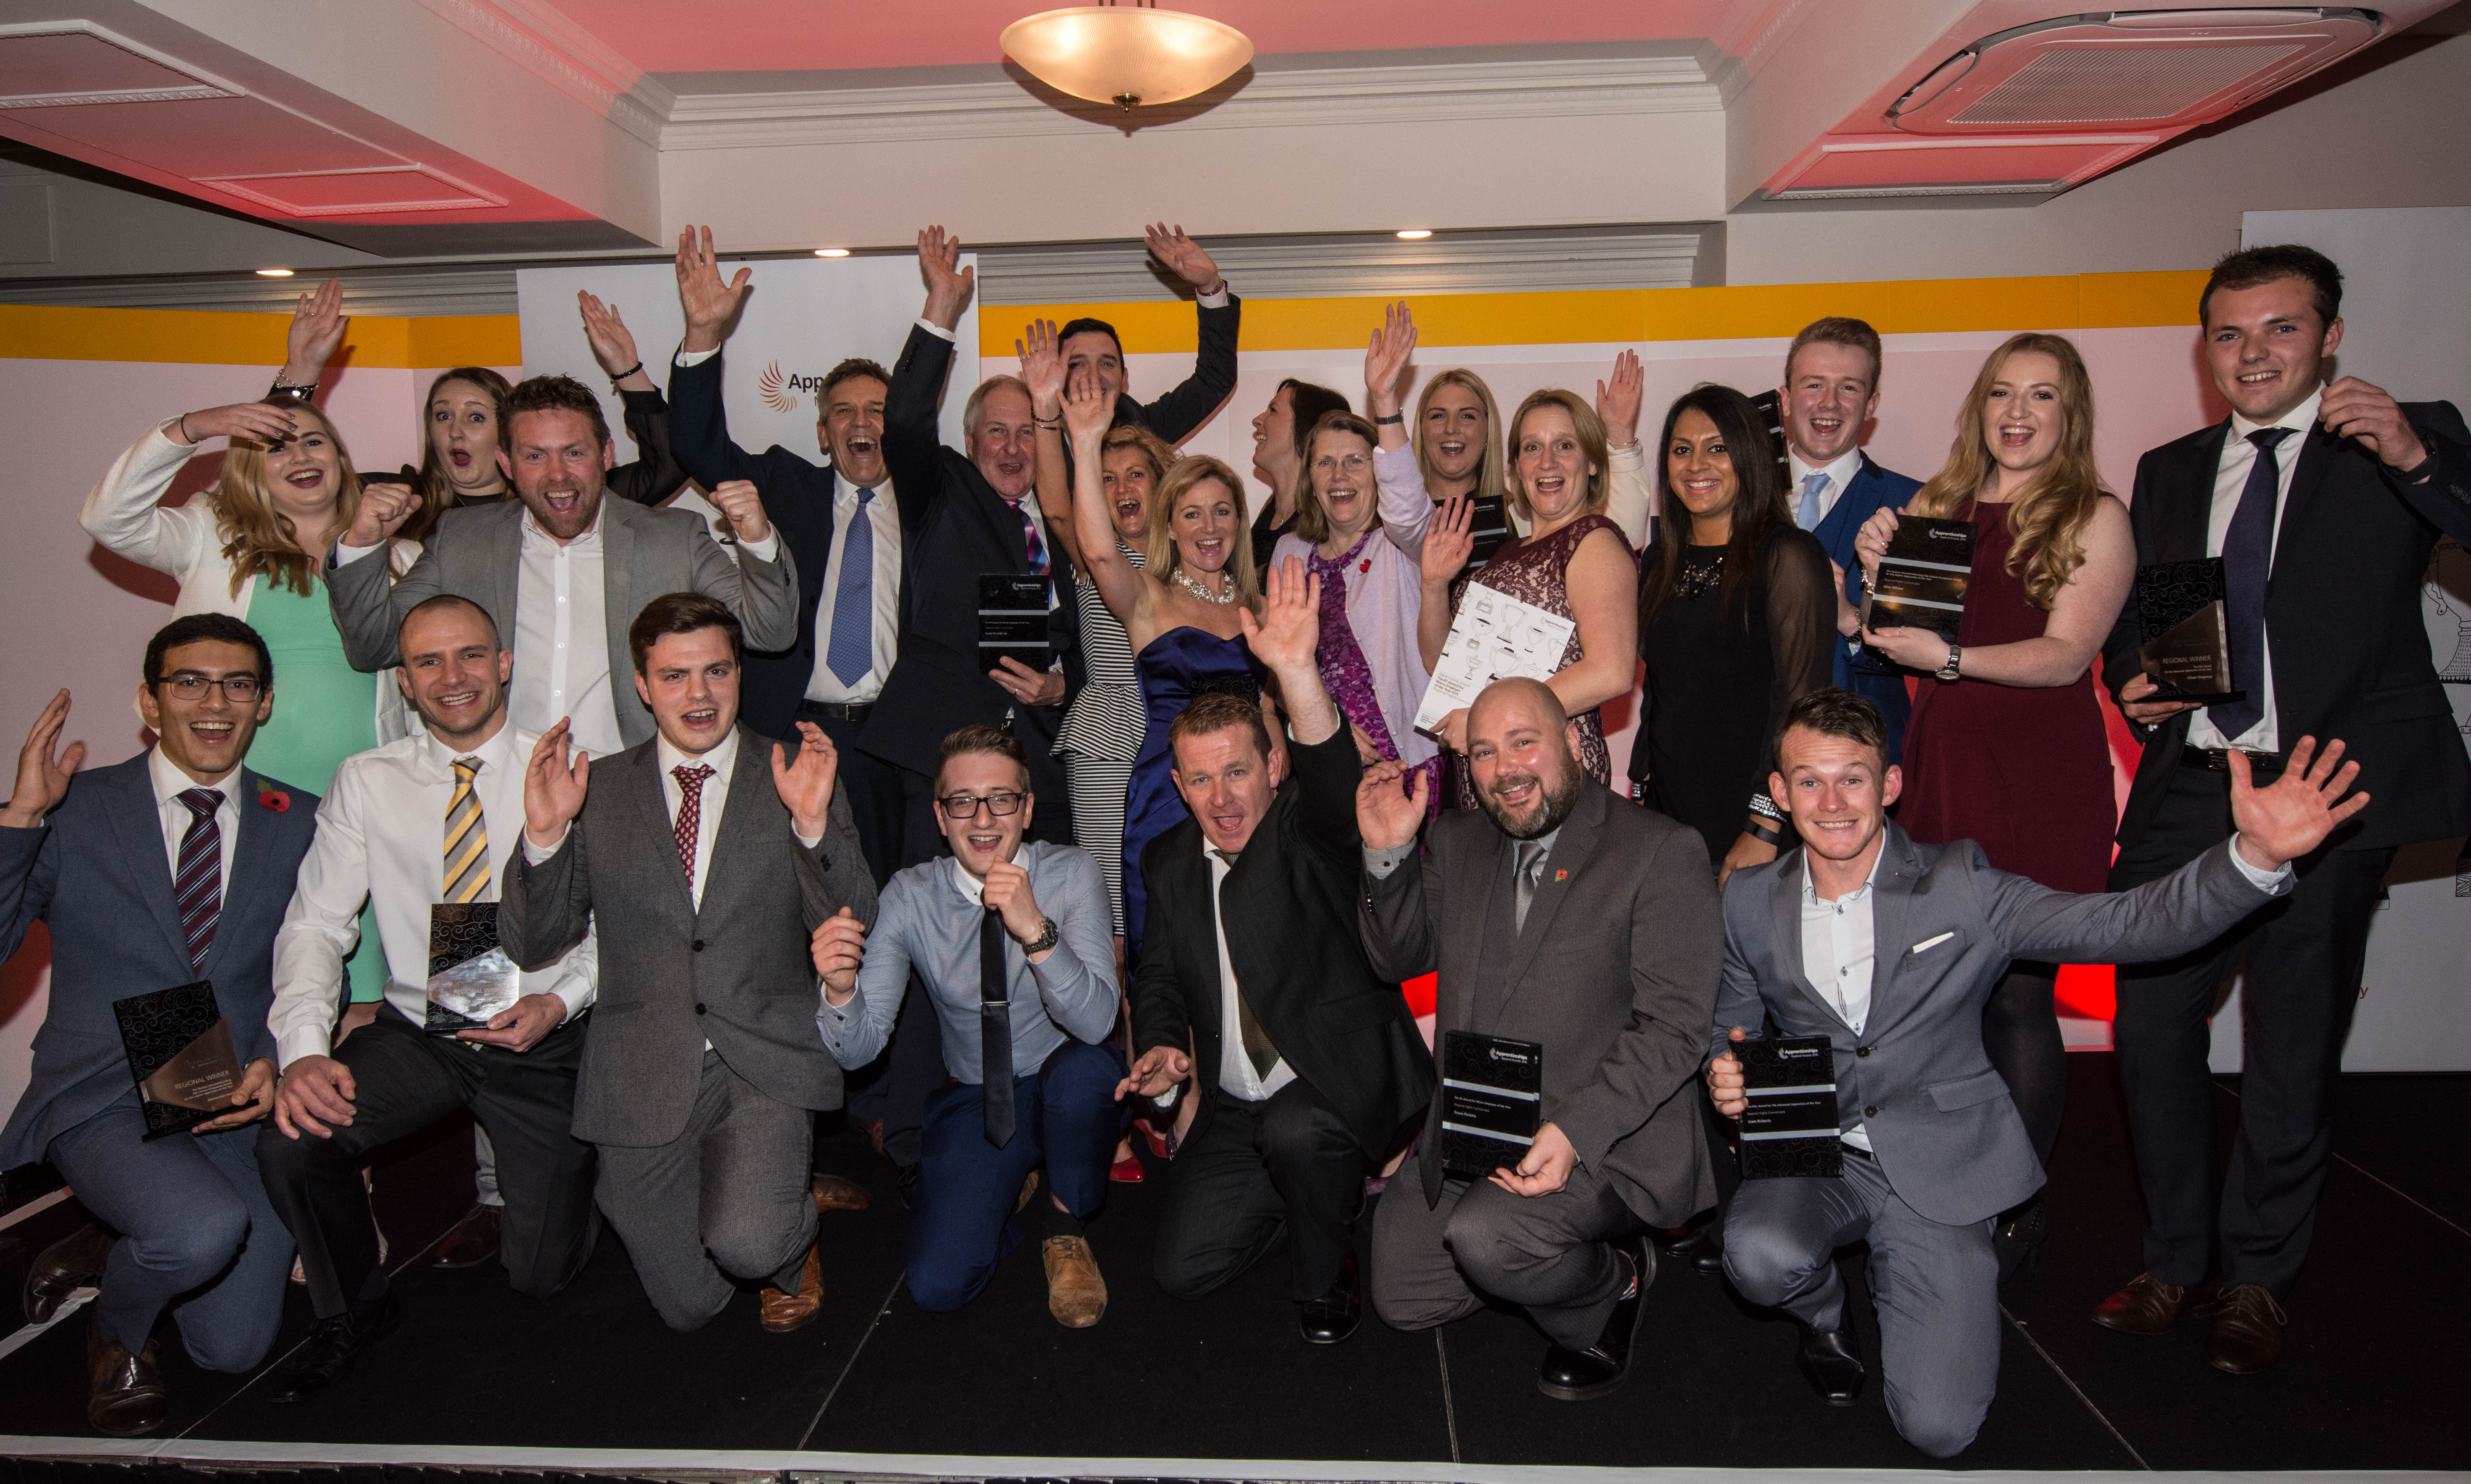 All the winners and highly commended entries at the East Midlands awards ceremony